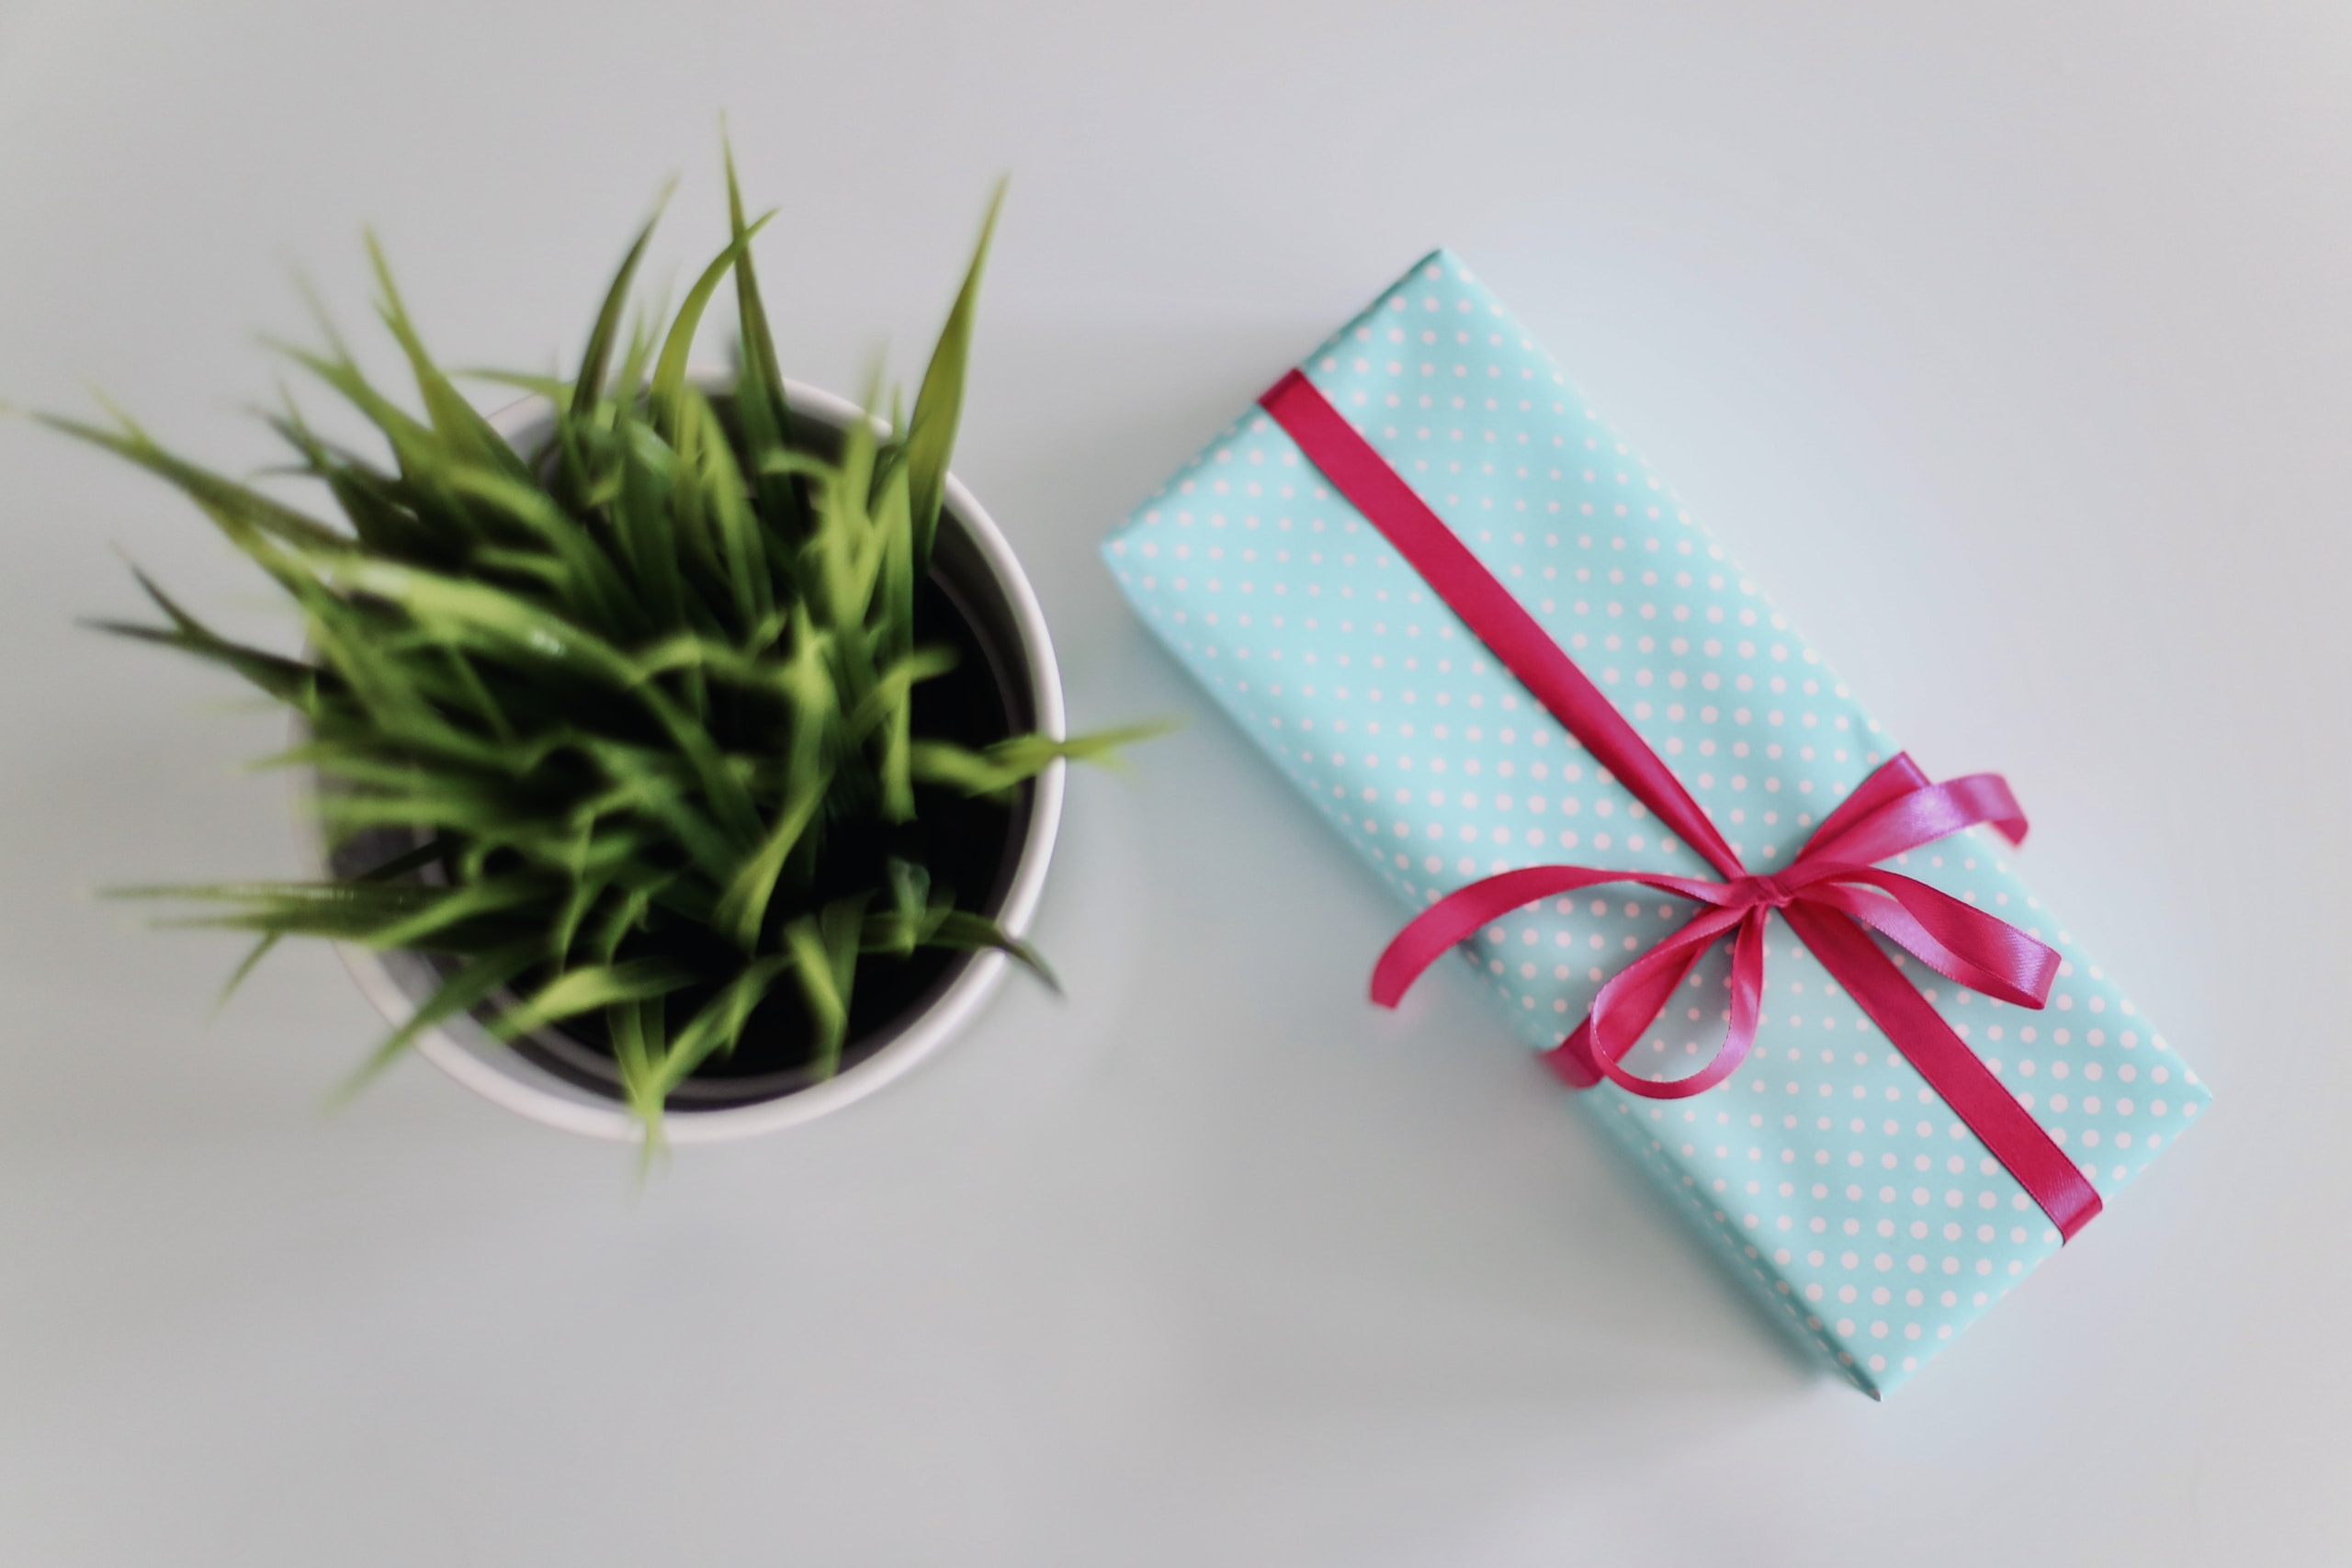 white gift box beside green leafed plant